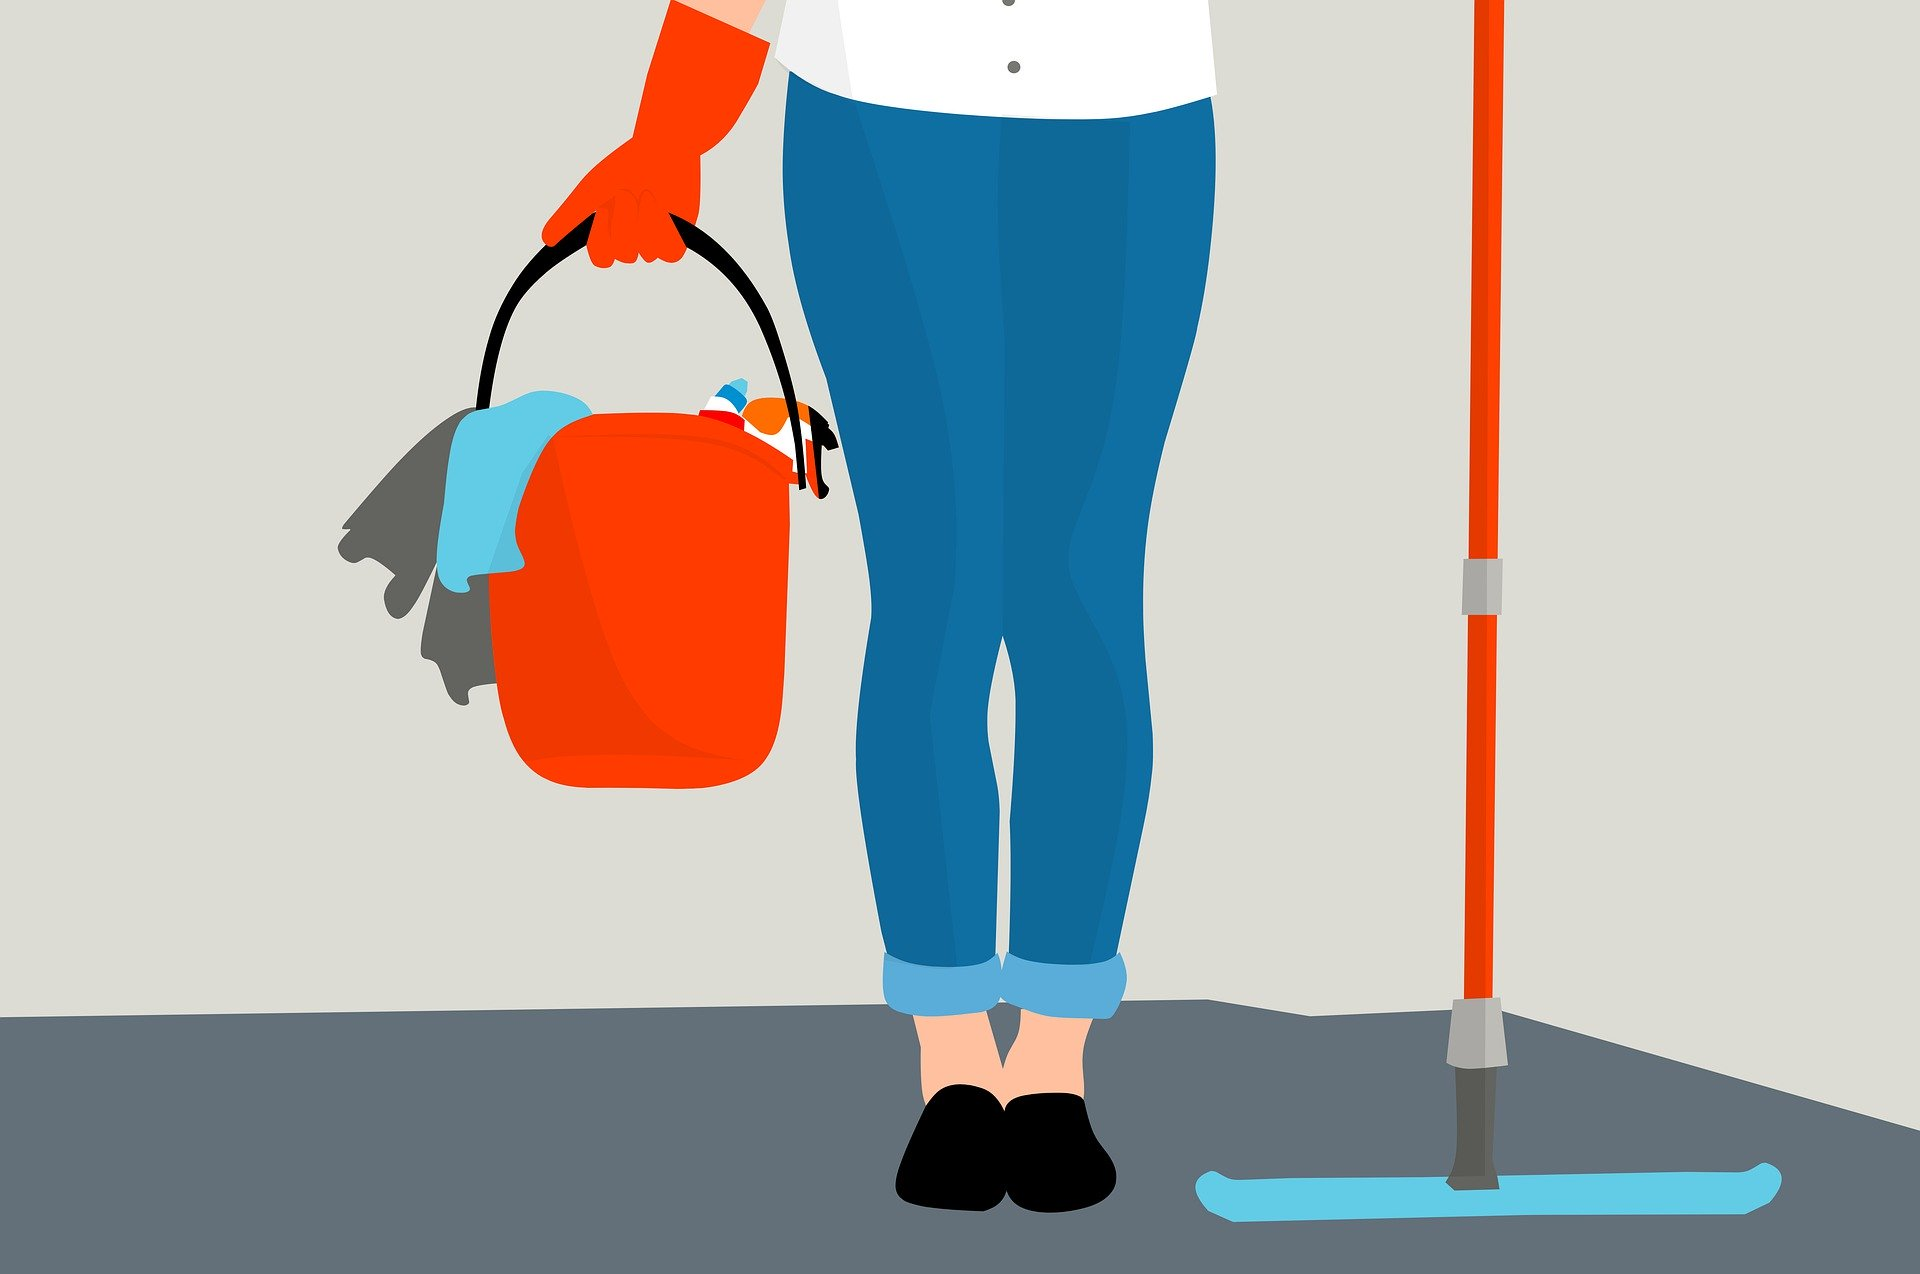 Cleaner holding mop and cleaning supplies in bucket graphic